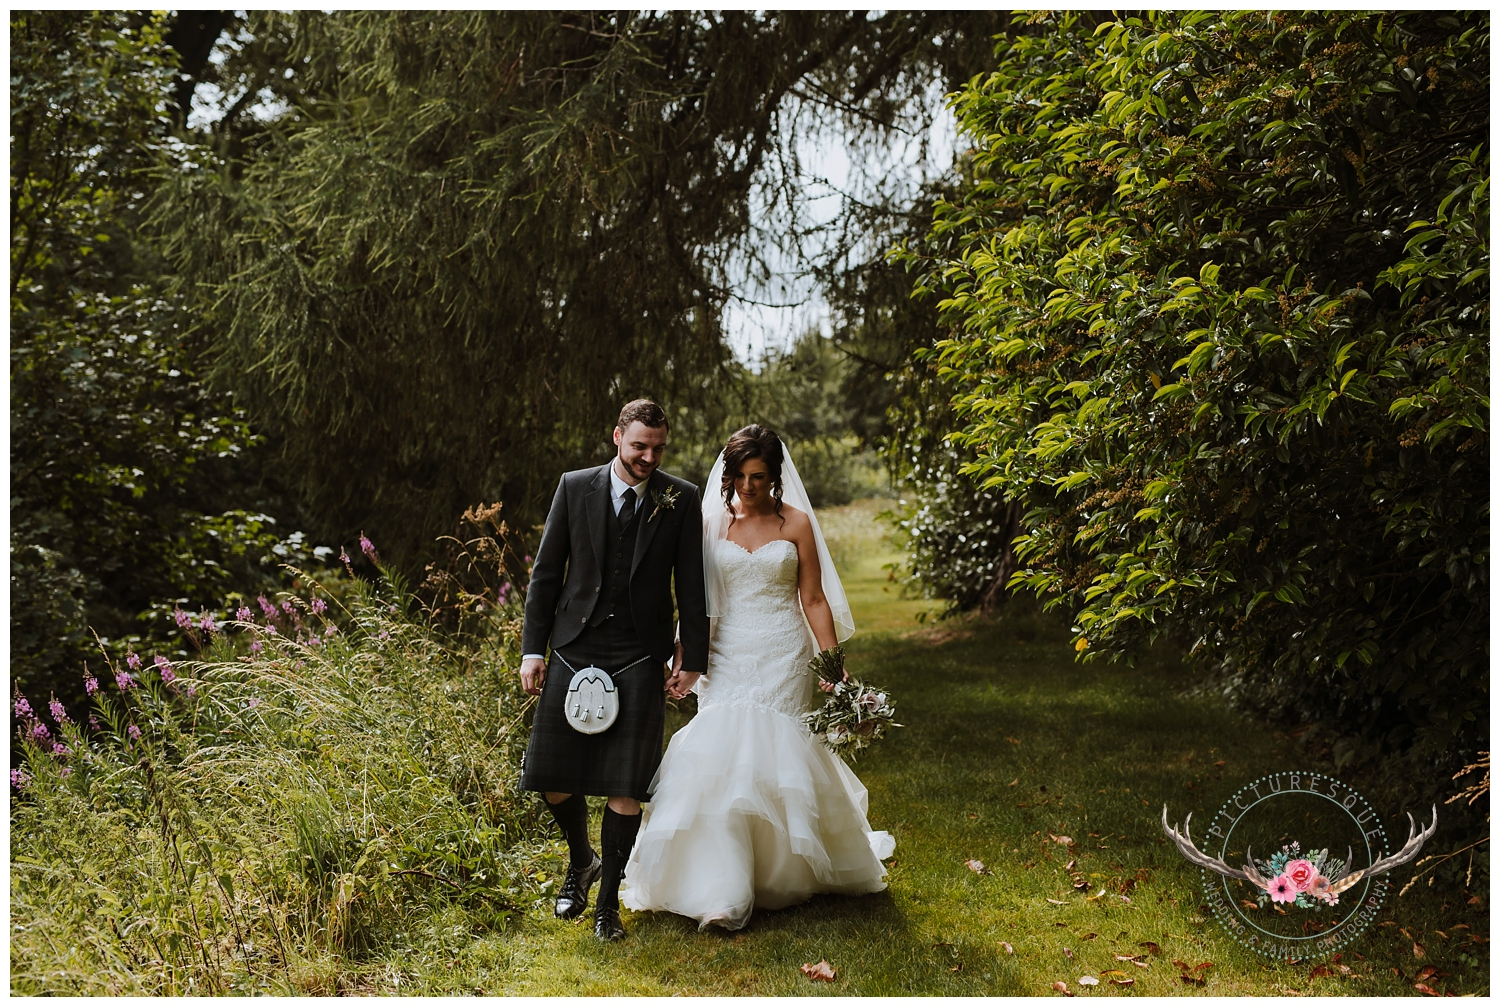 Airth Castle, Scottish wedding, Picturesque, WeddingPhotography, Scotland_0053.jpg